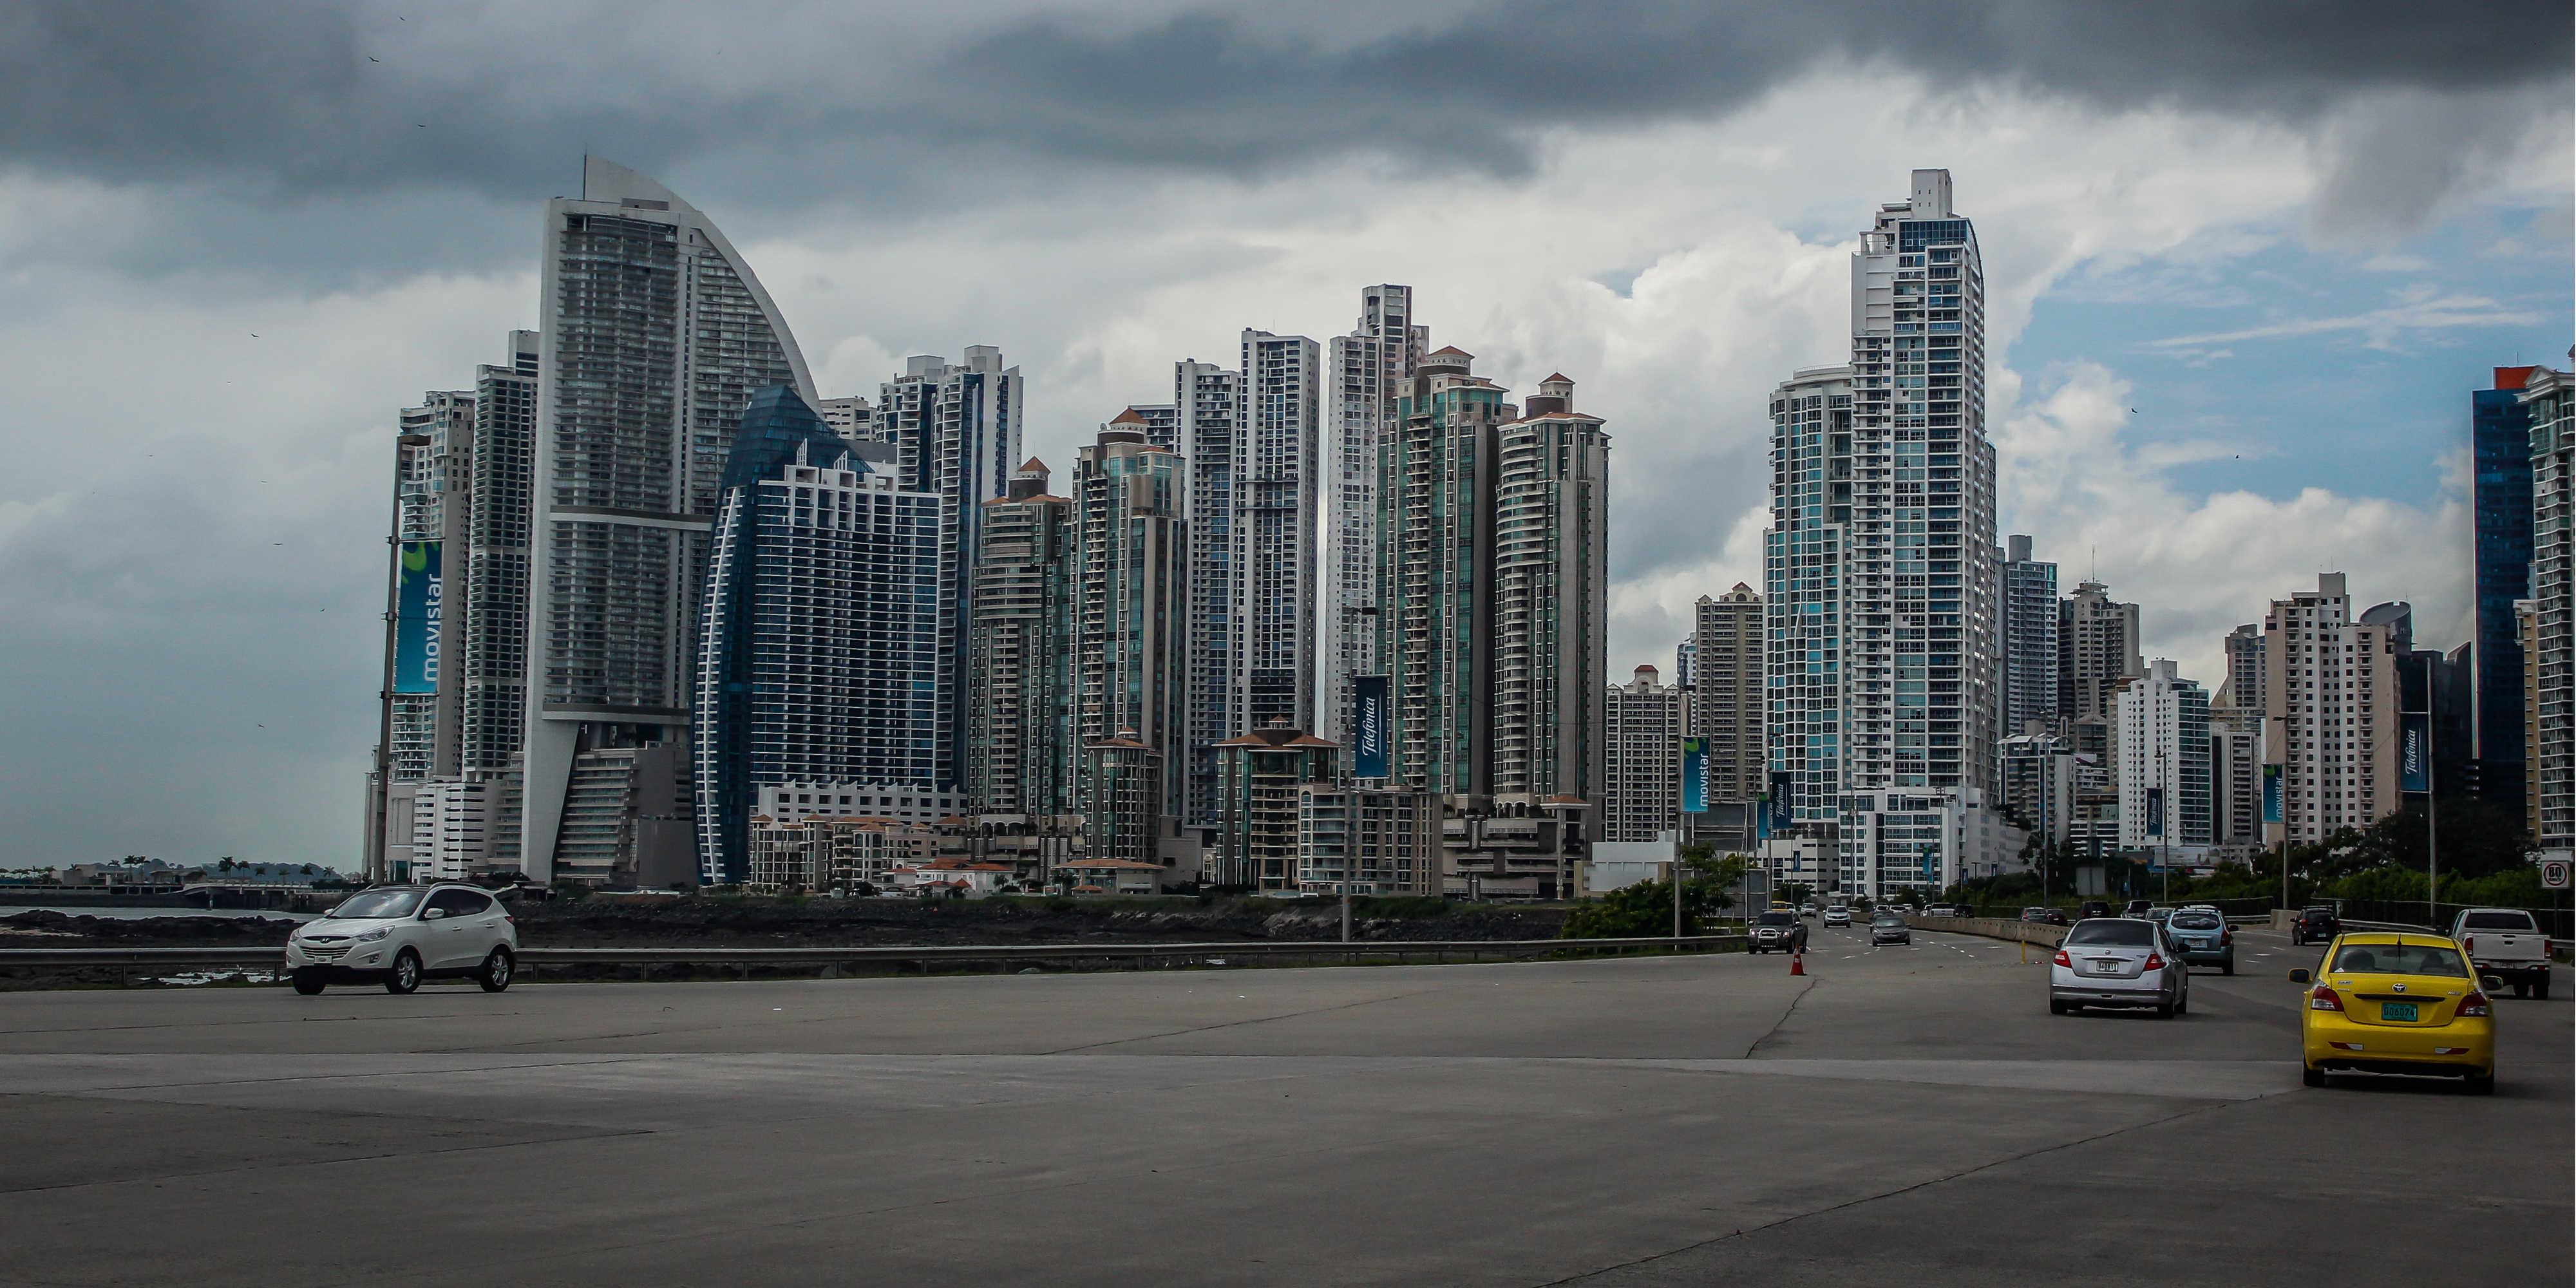 Photo of skyscrapers in Panama city